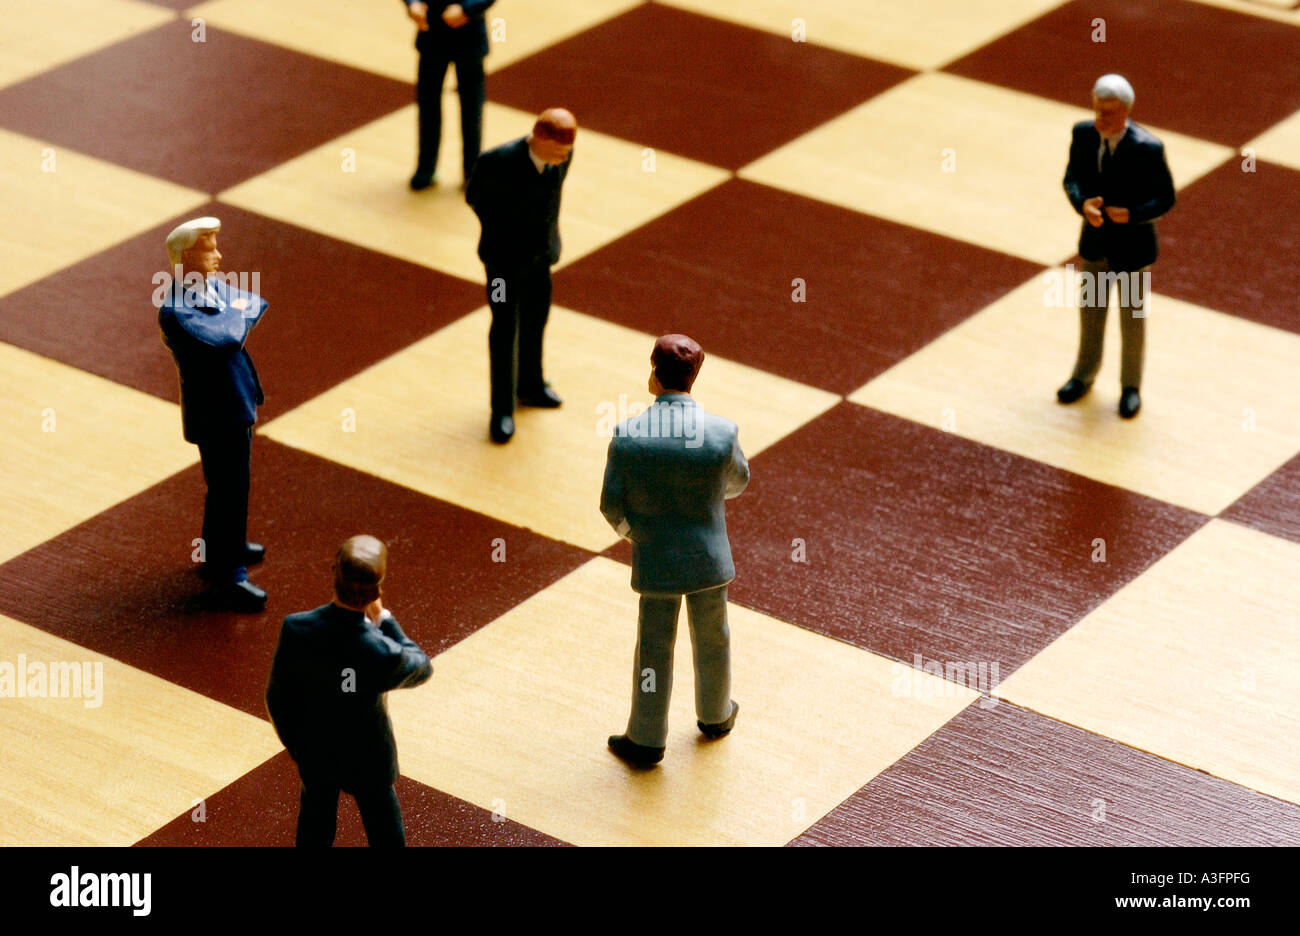 Businessmen figures on a chessboard - business competition / decision making / judgment / choices / strategy concept - Stock Image